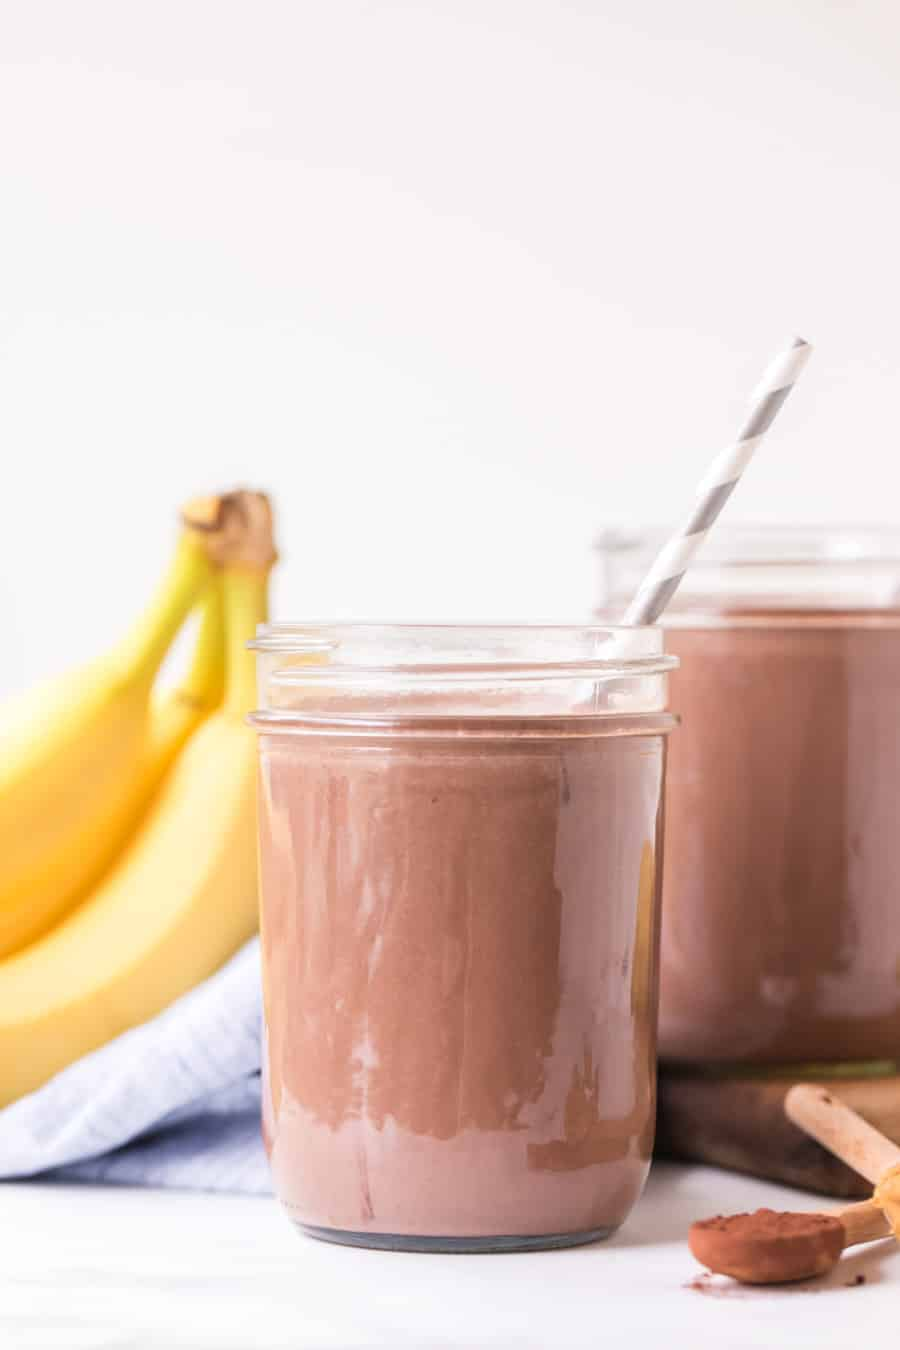 two glass canning jars filled with peanut butter chocolate smoothies with paper straws next to two bananas and teaspoon of cinnamon